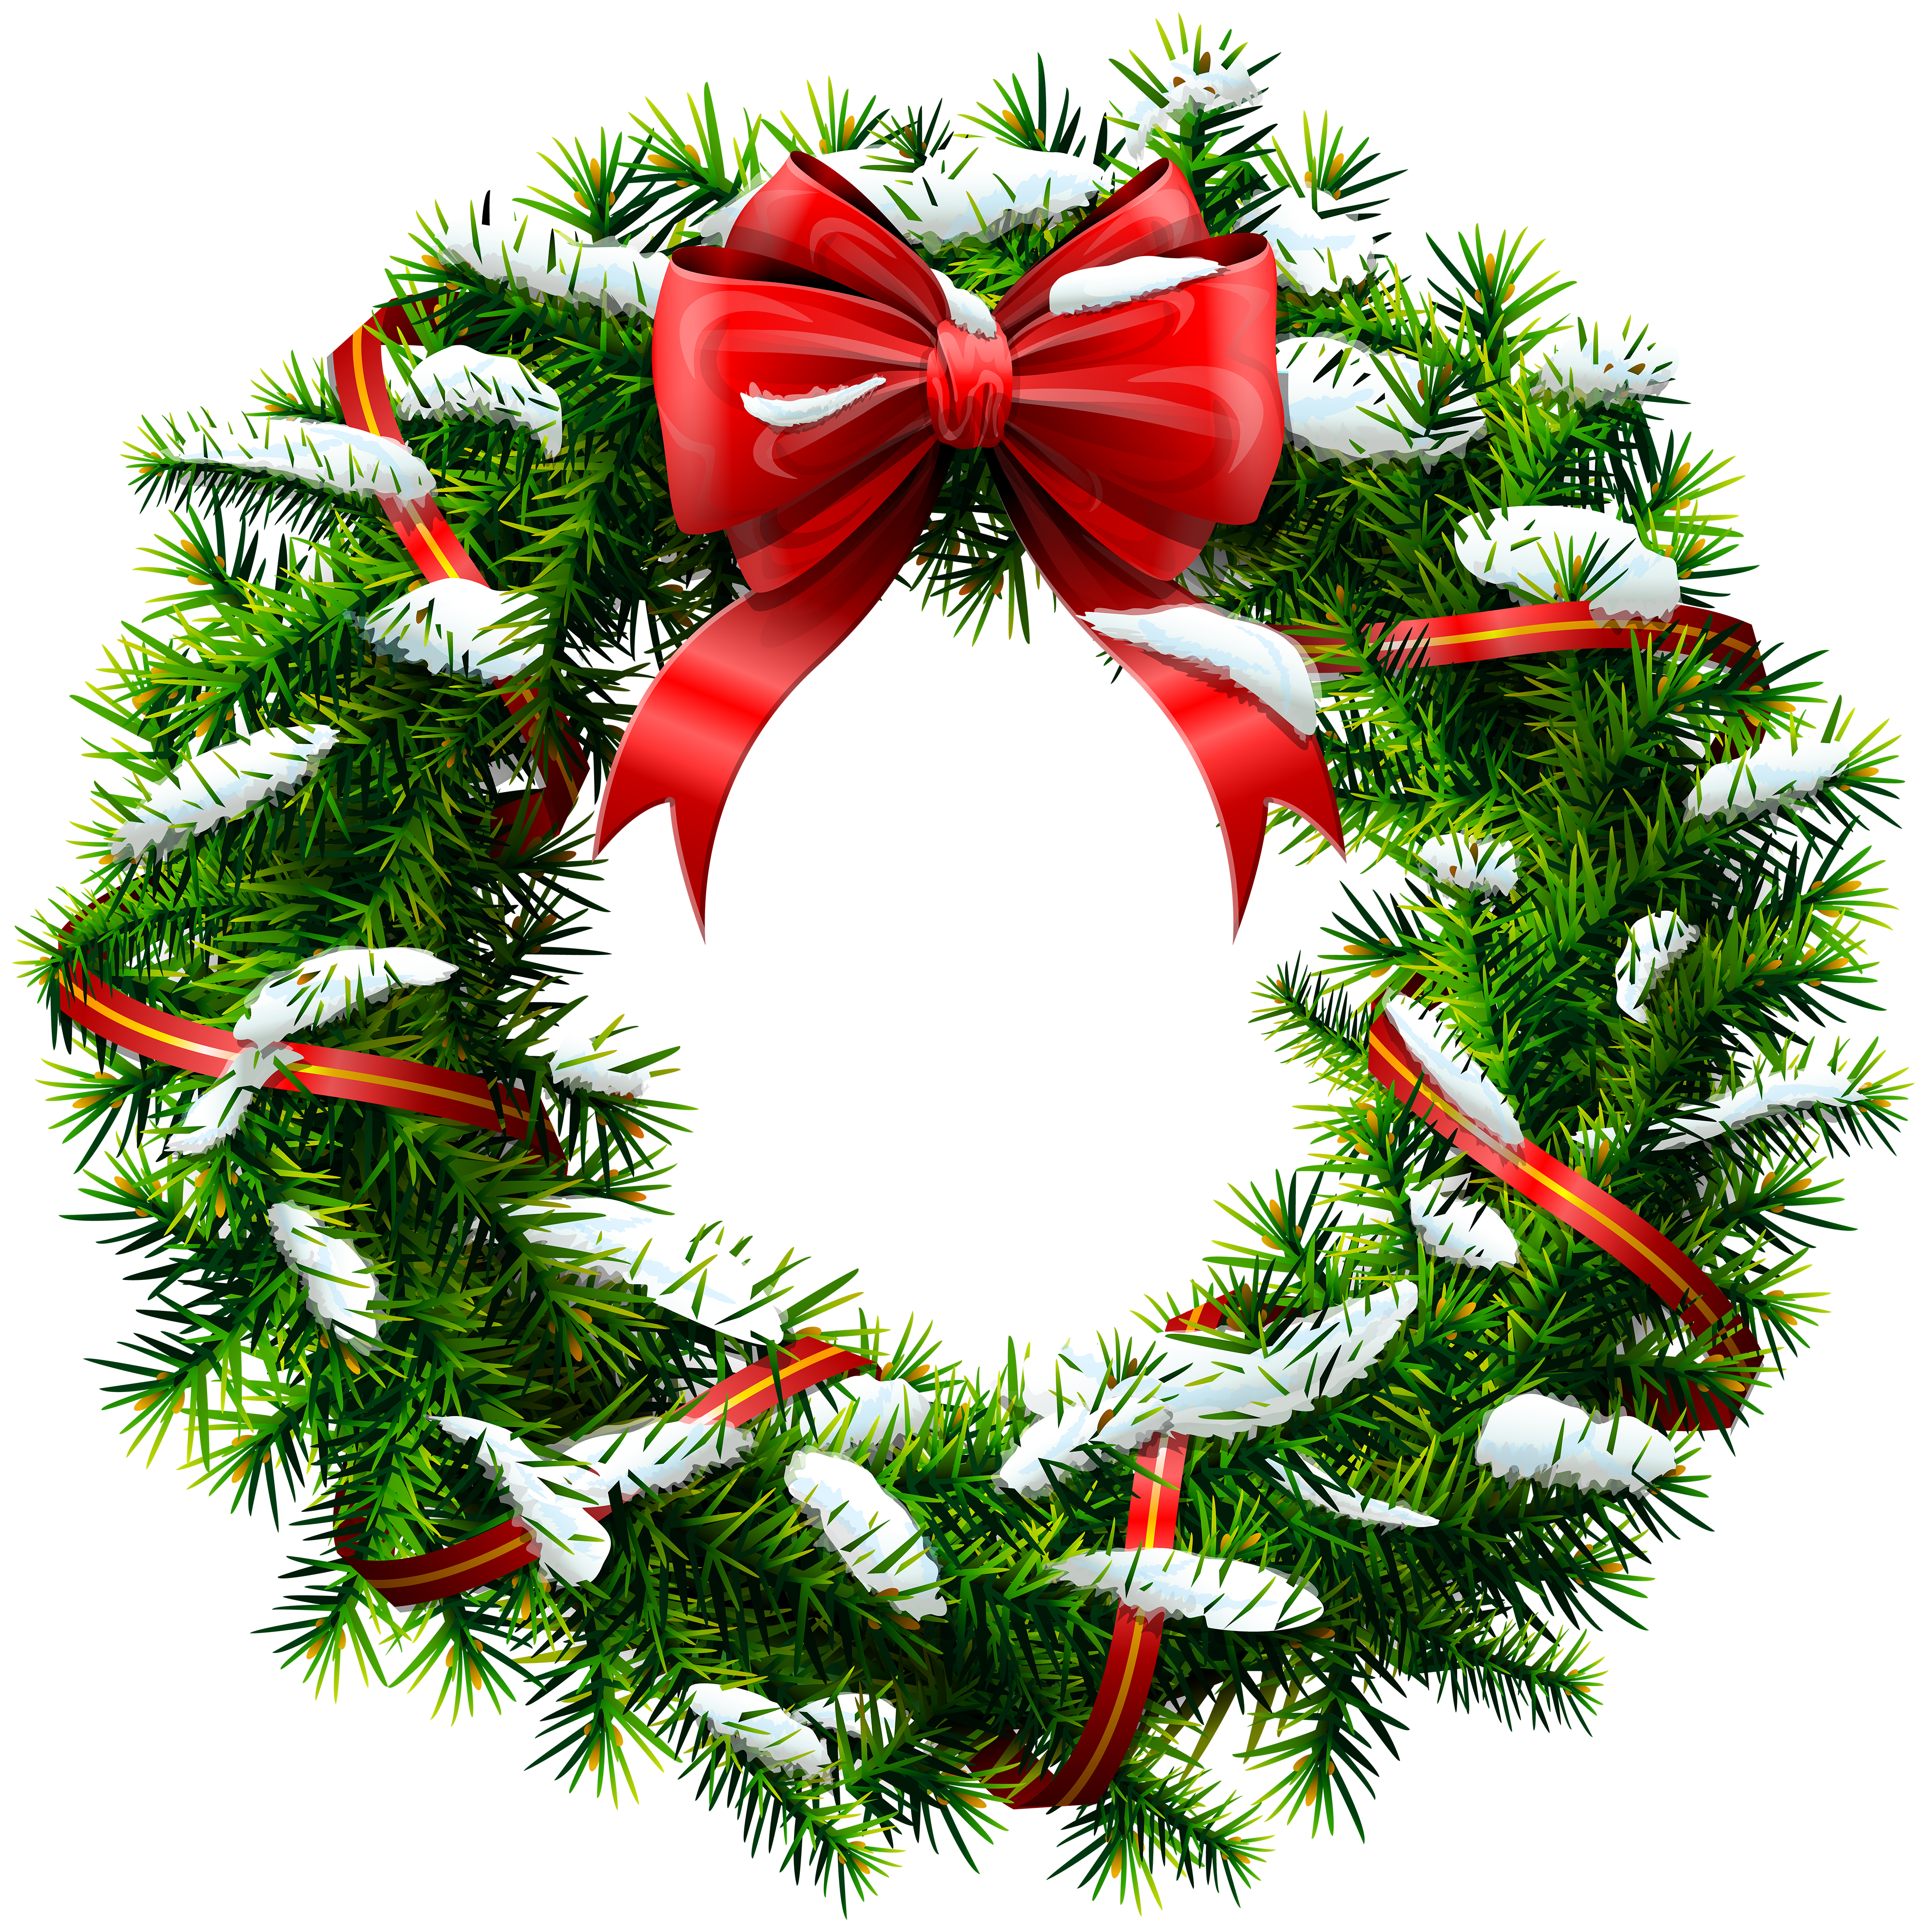 Christmas Wreath with Snow PNG Clip Art.